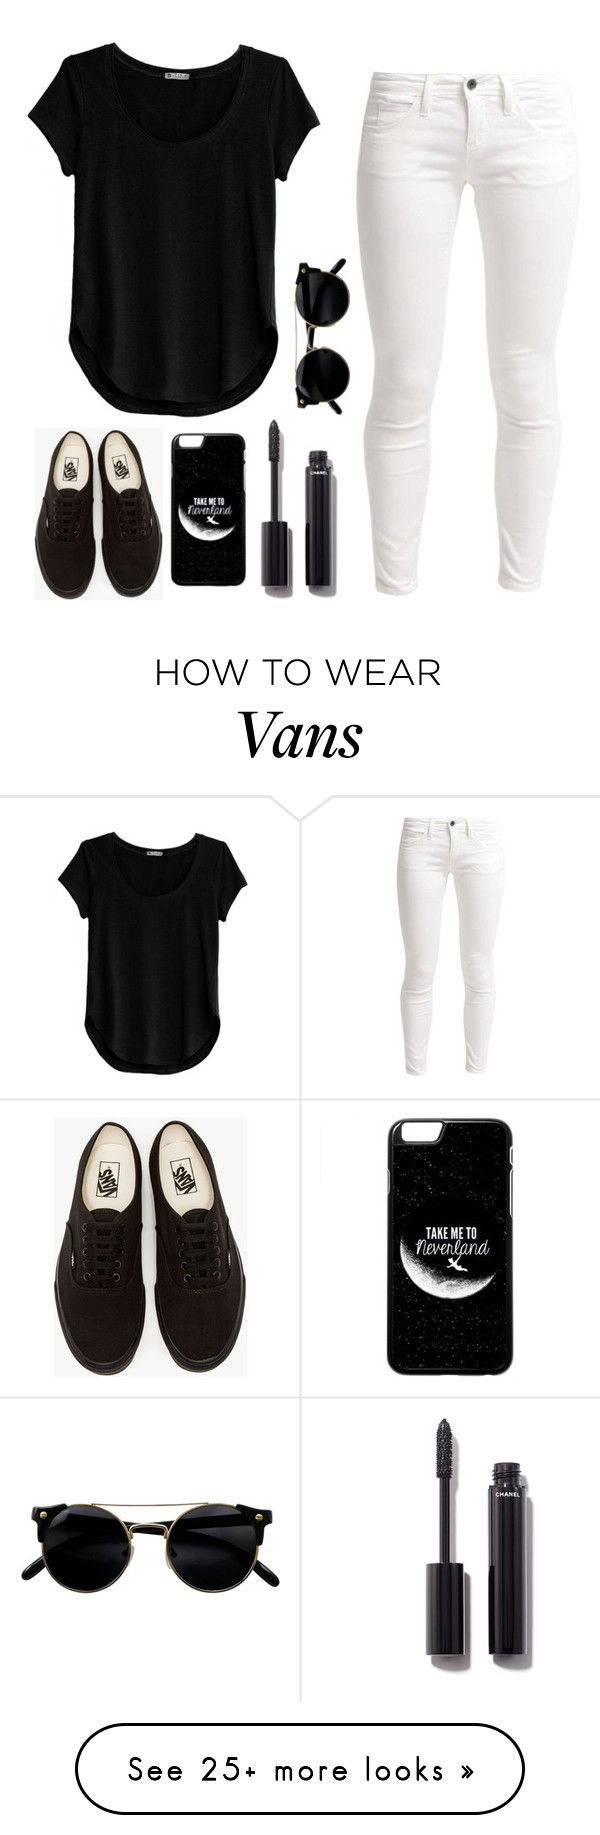 """""""black and white"""" by tryn11 on Polyvore featuring Cosabella, Benetton, Vans and Chanel"""